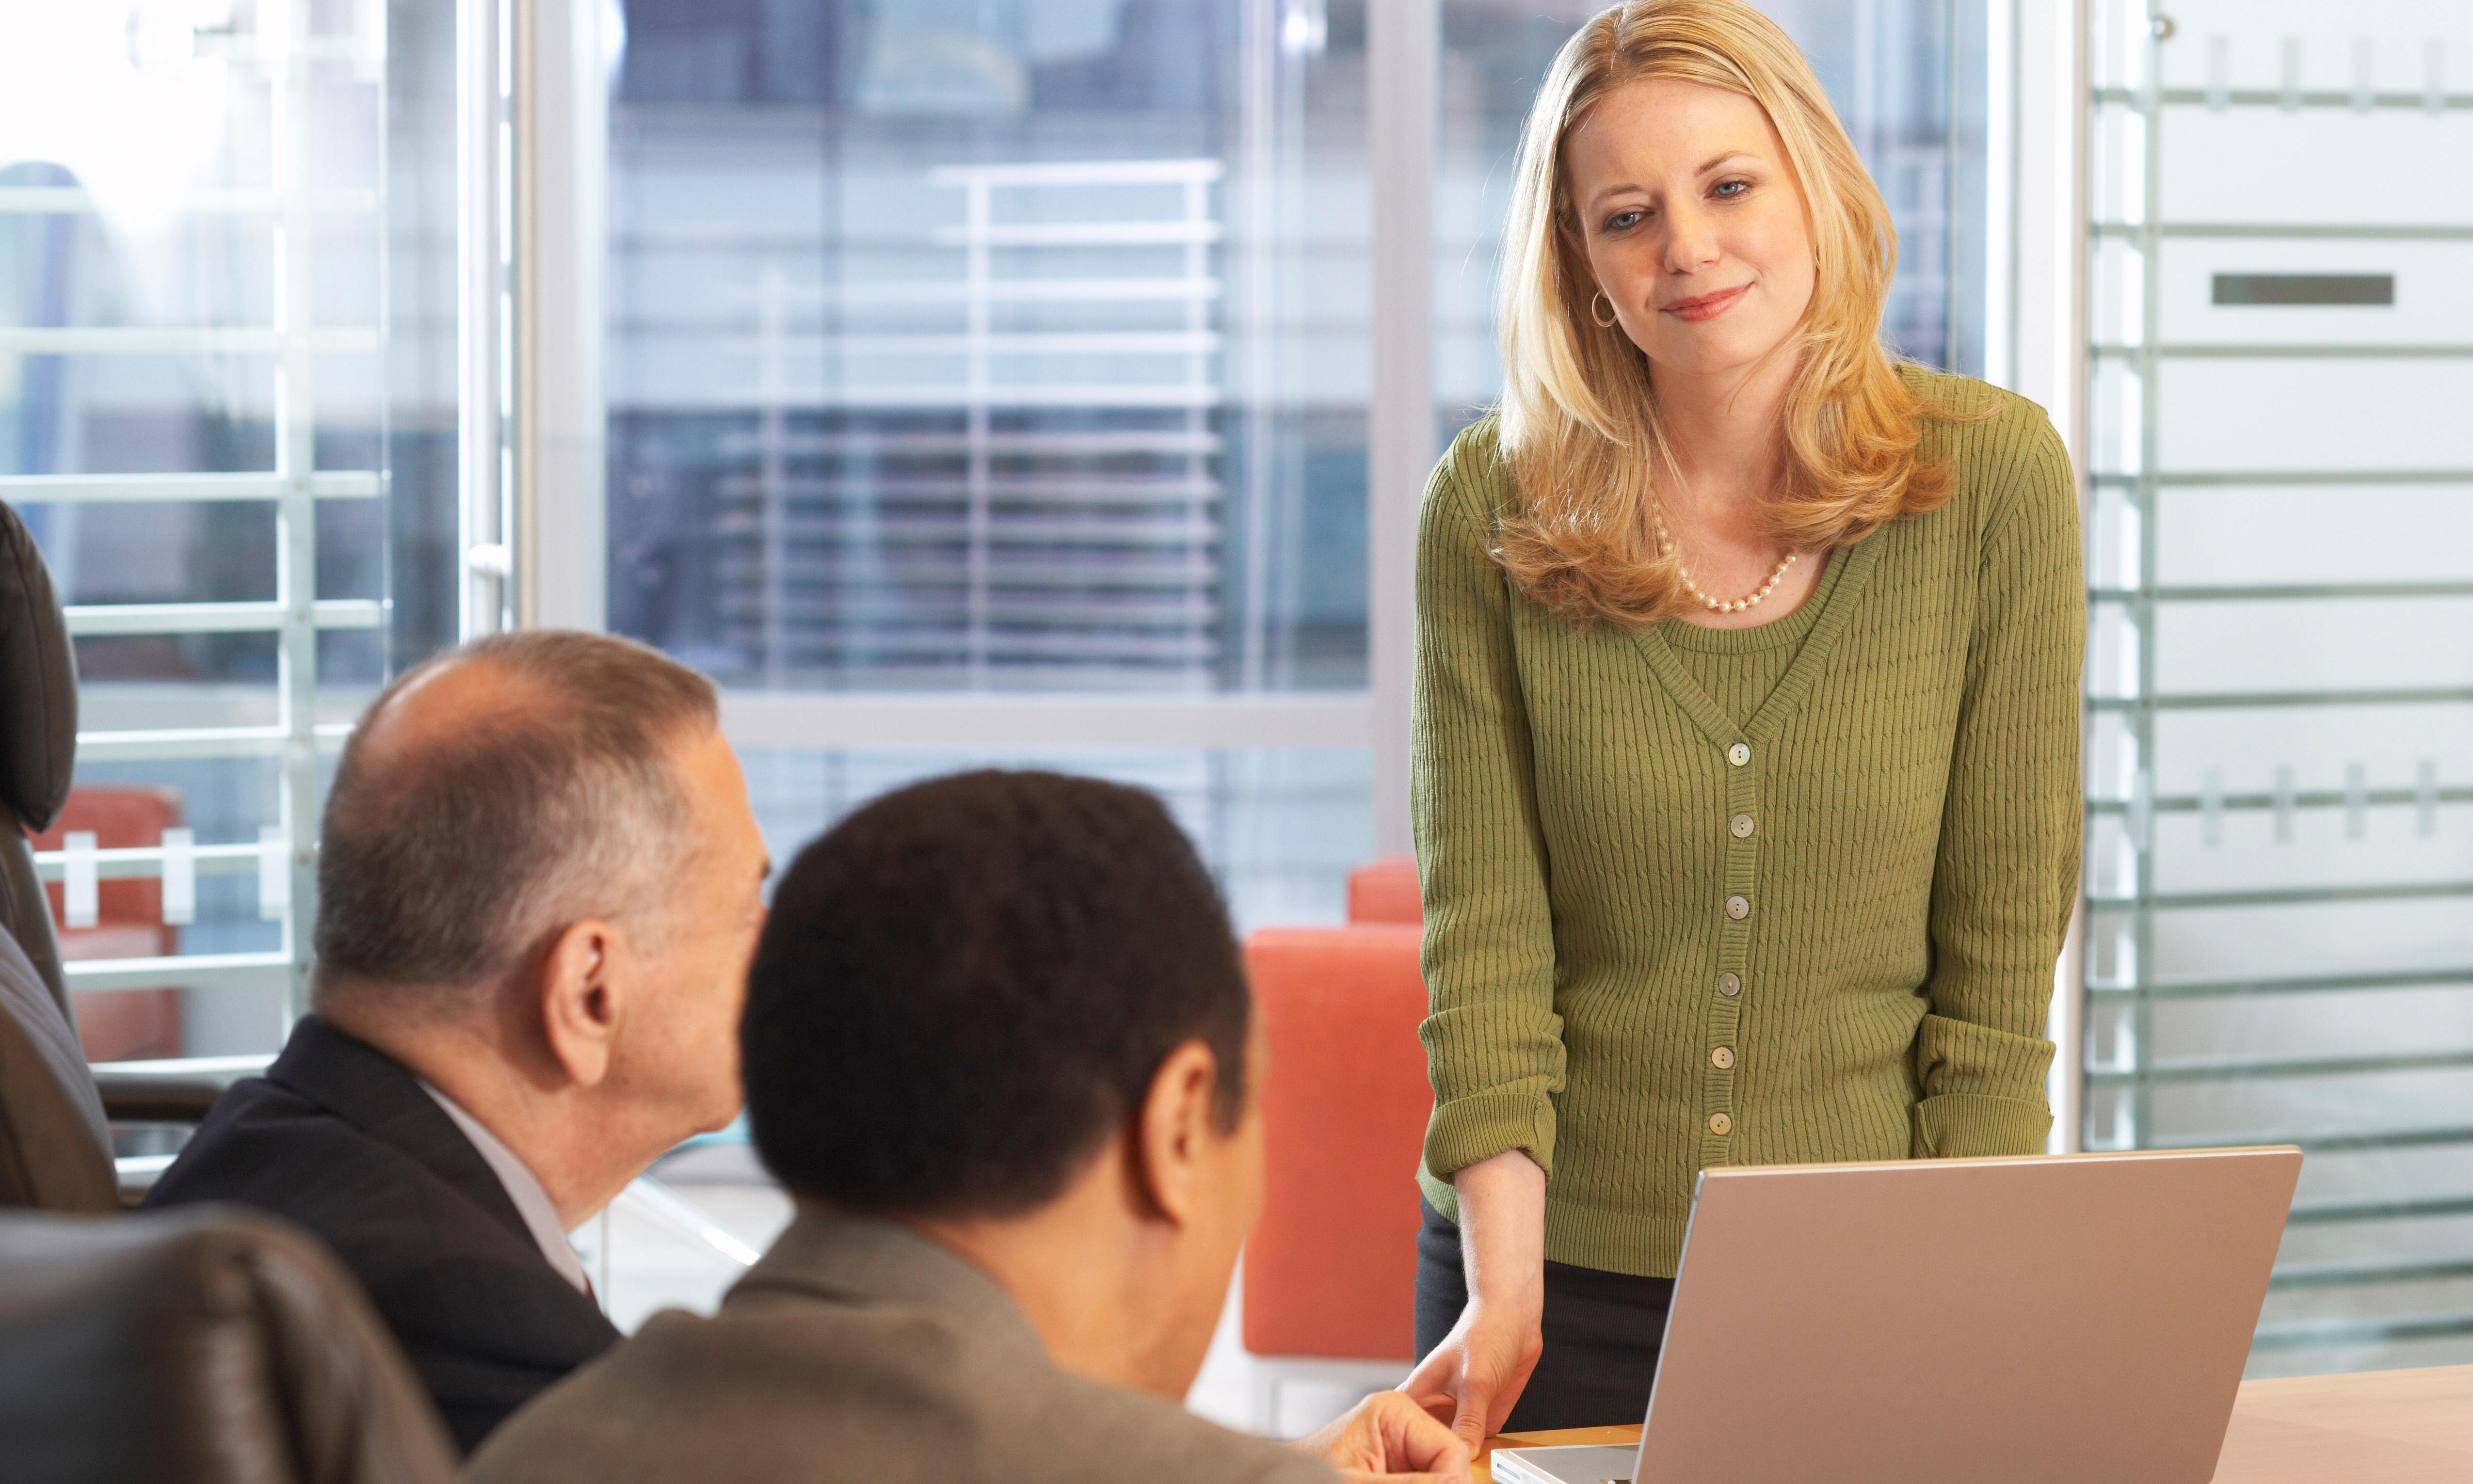 Insights... the high price successful working women pay